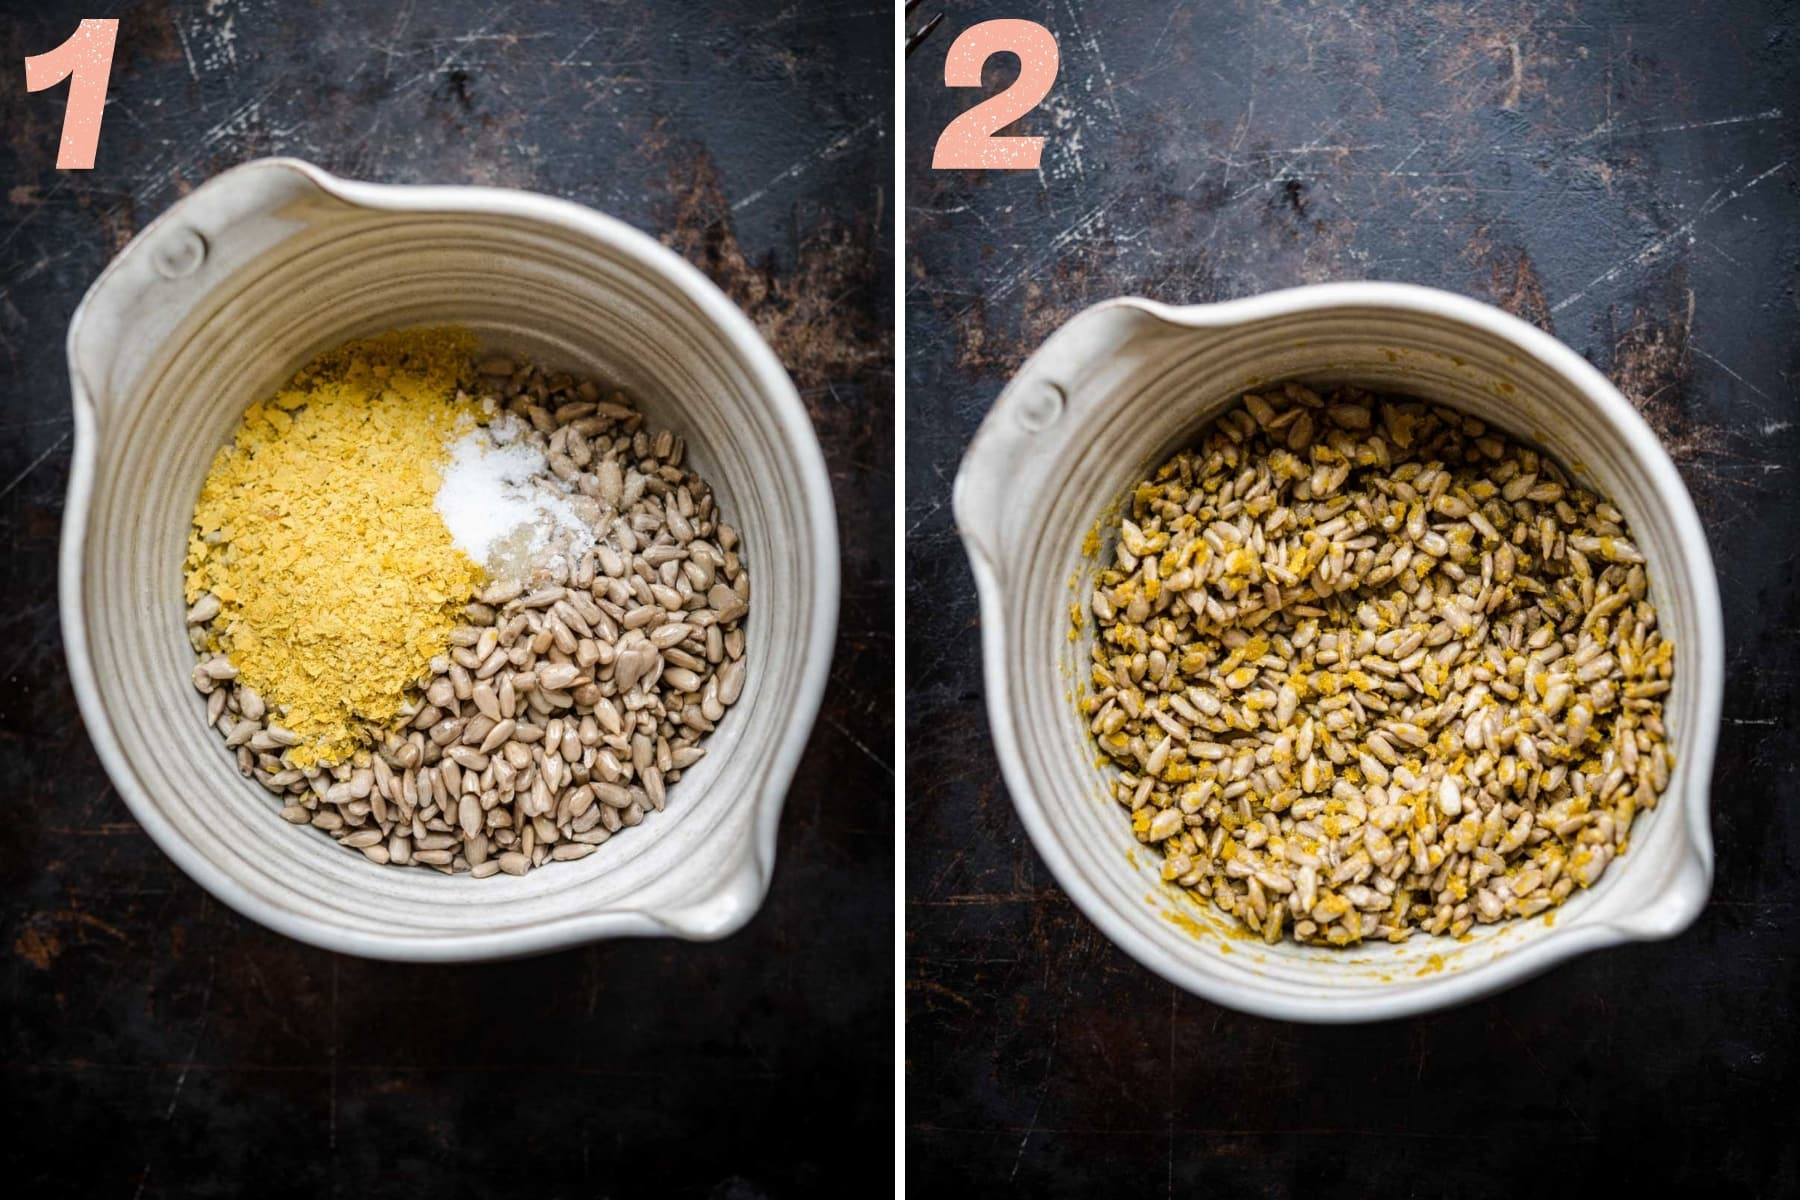 before and after stirring together ingredients for cheesy vegan sunflower seeds in small bowl.